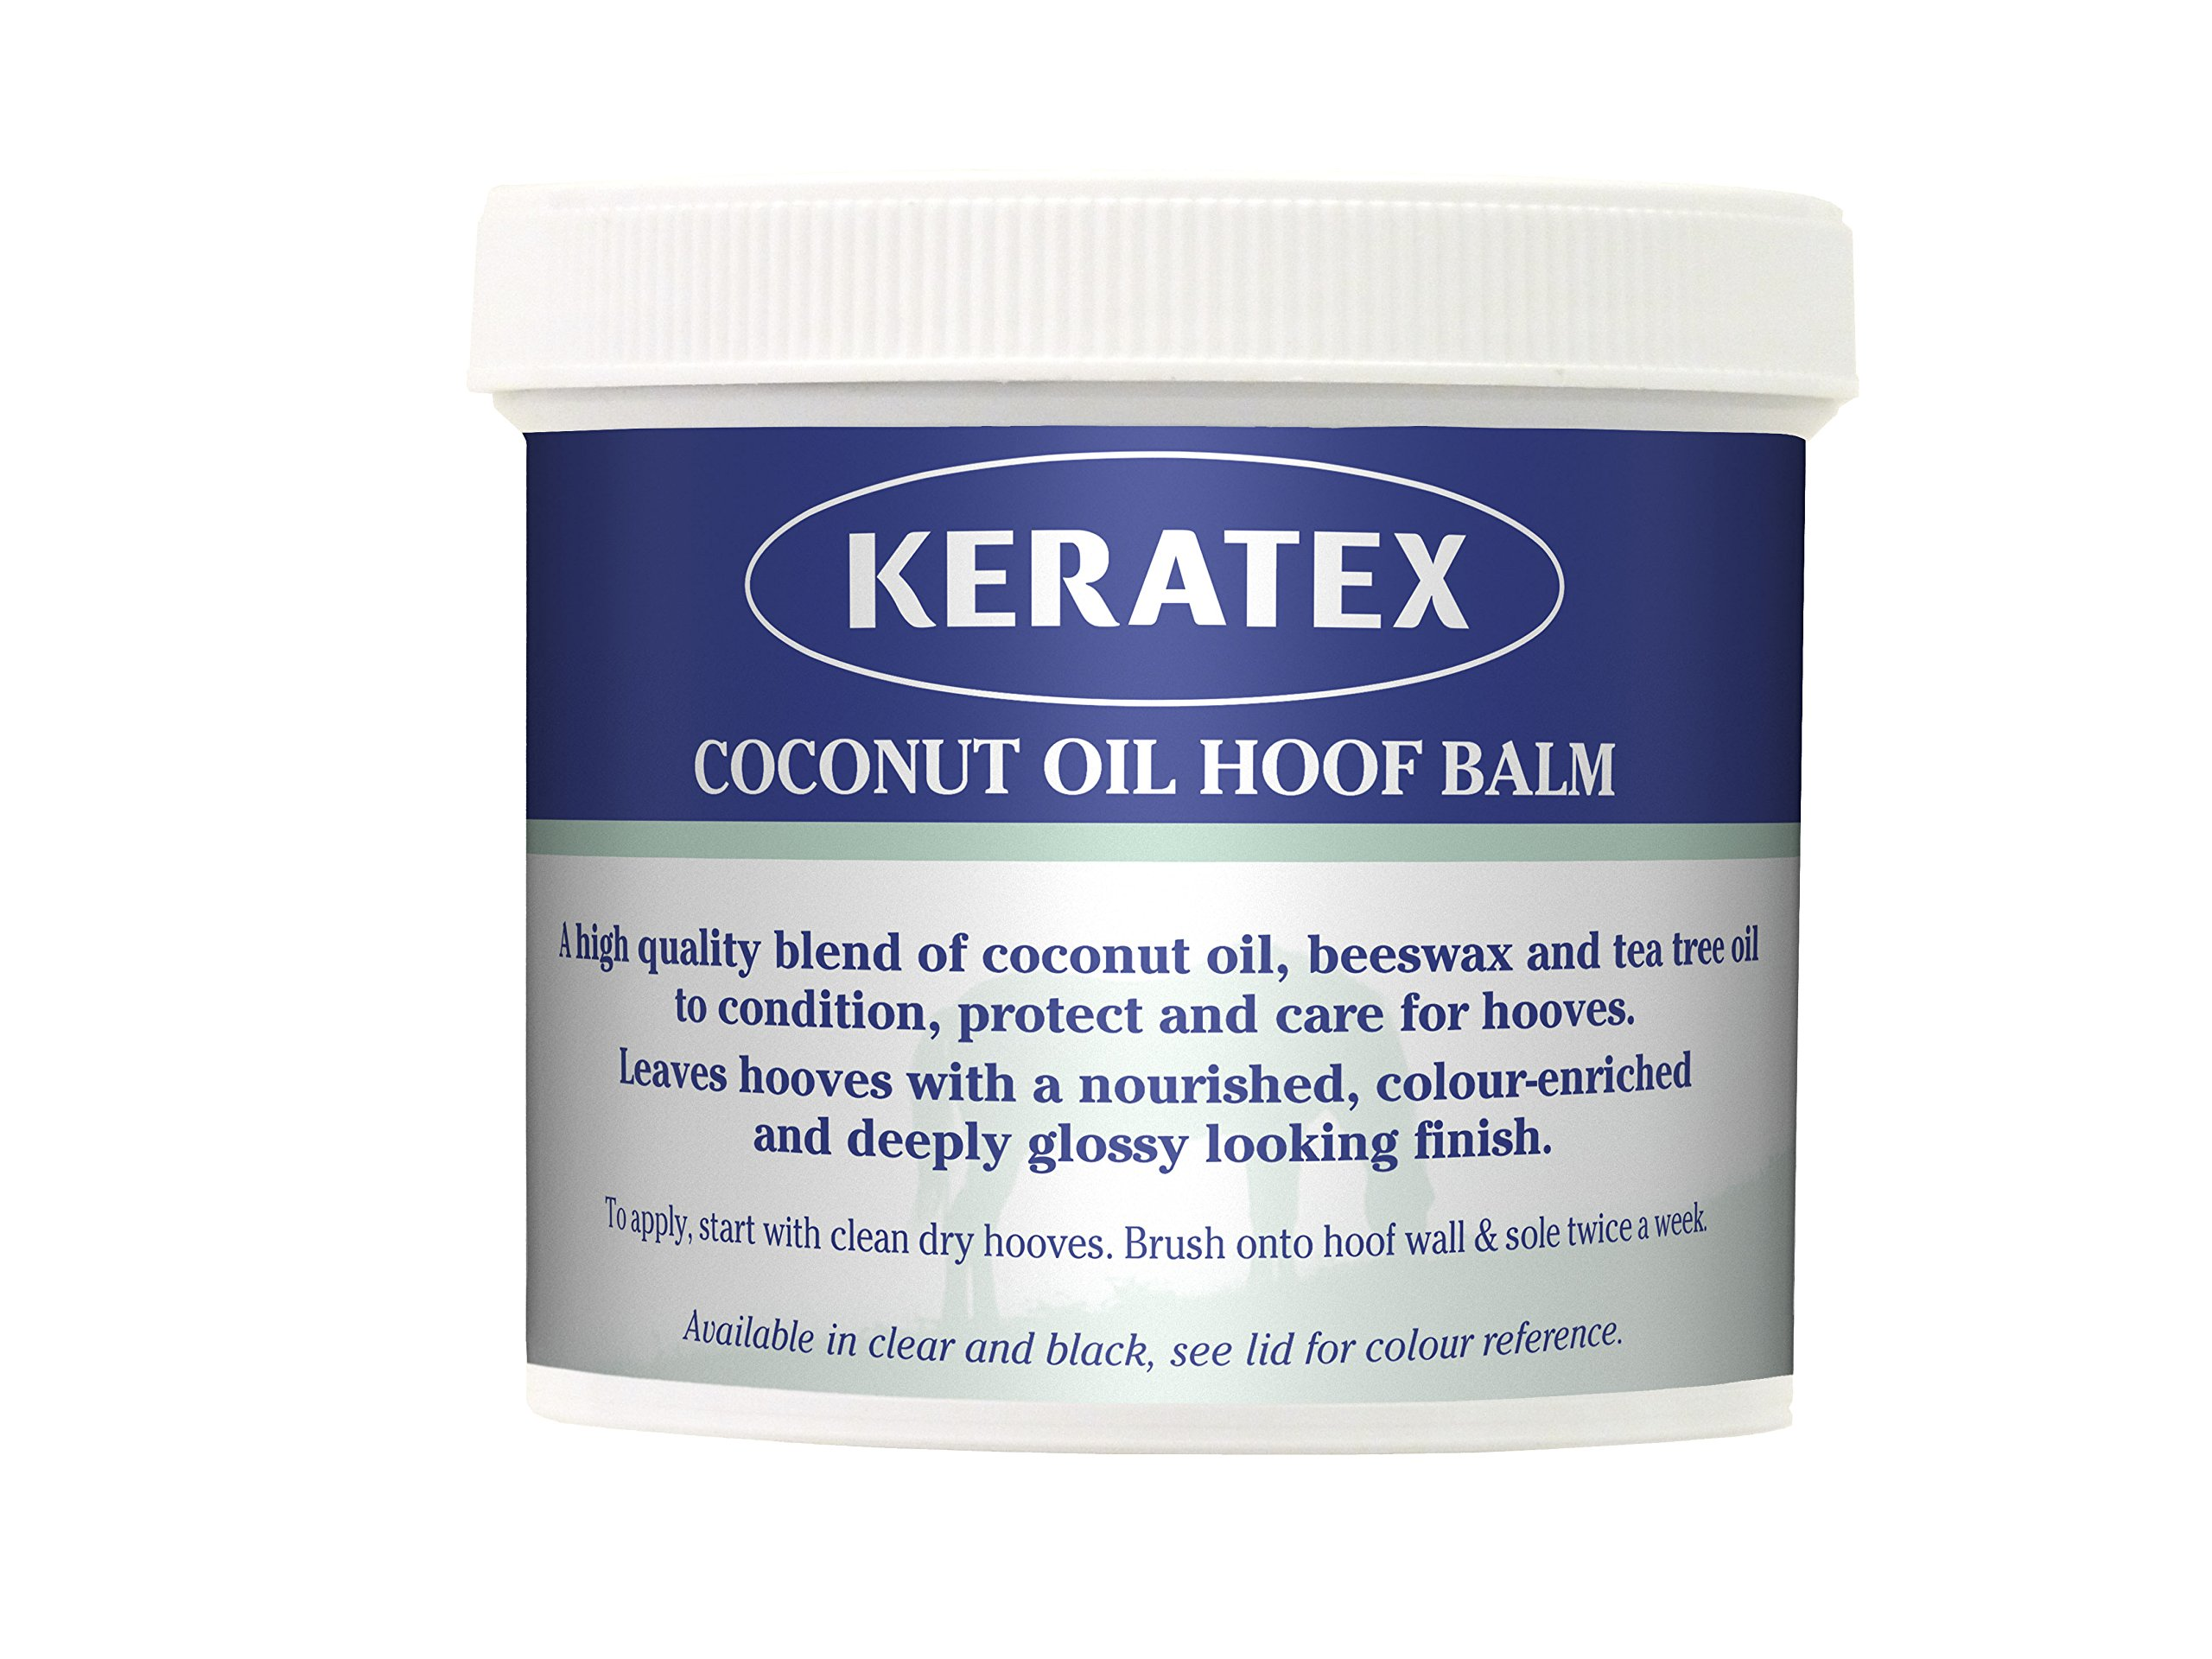 Keratex Coconut Oil Hoof Balm, 400g, Clear